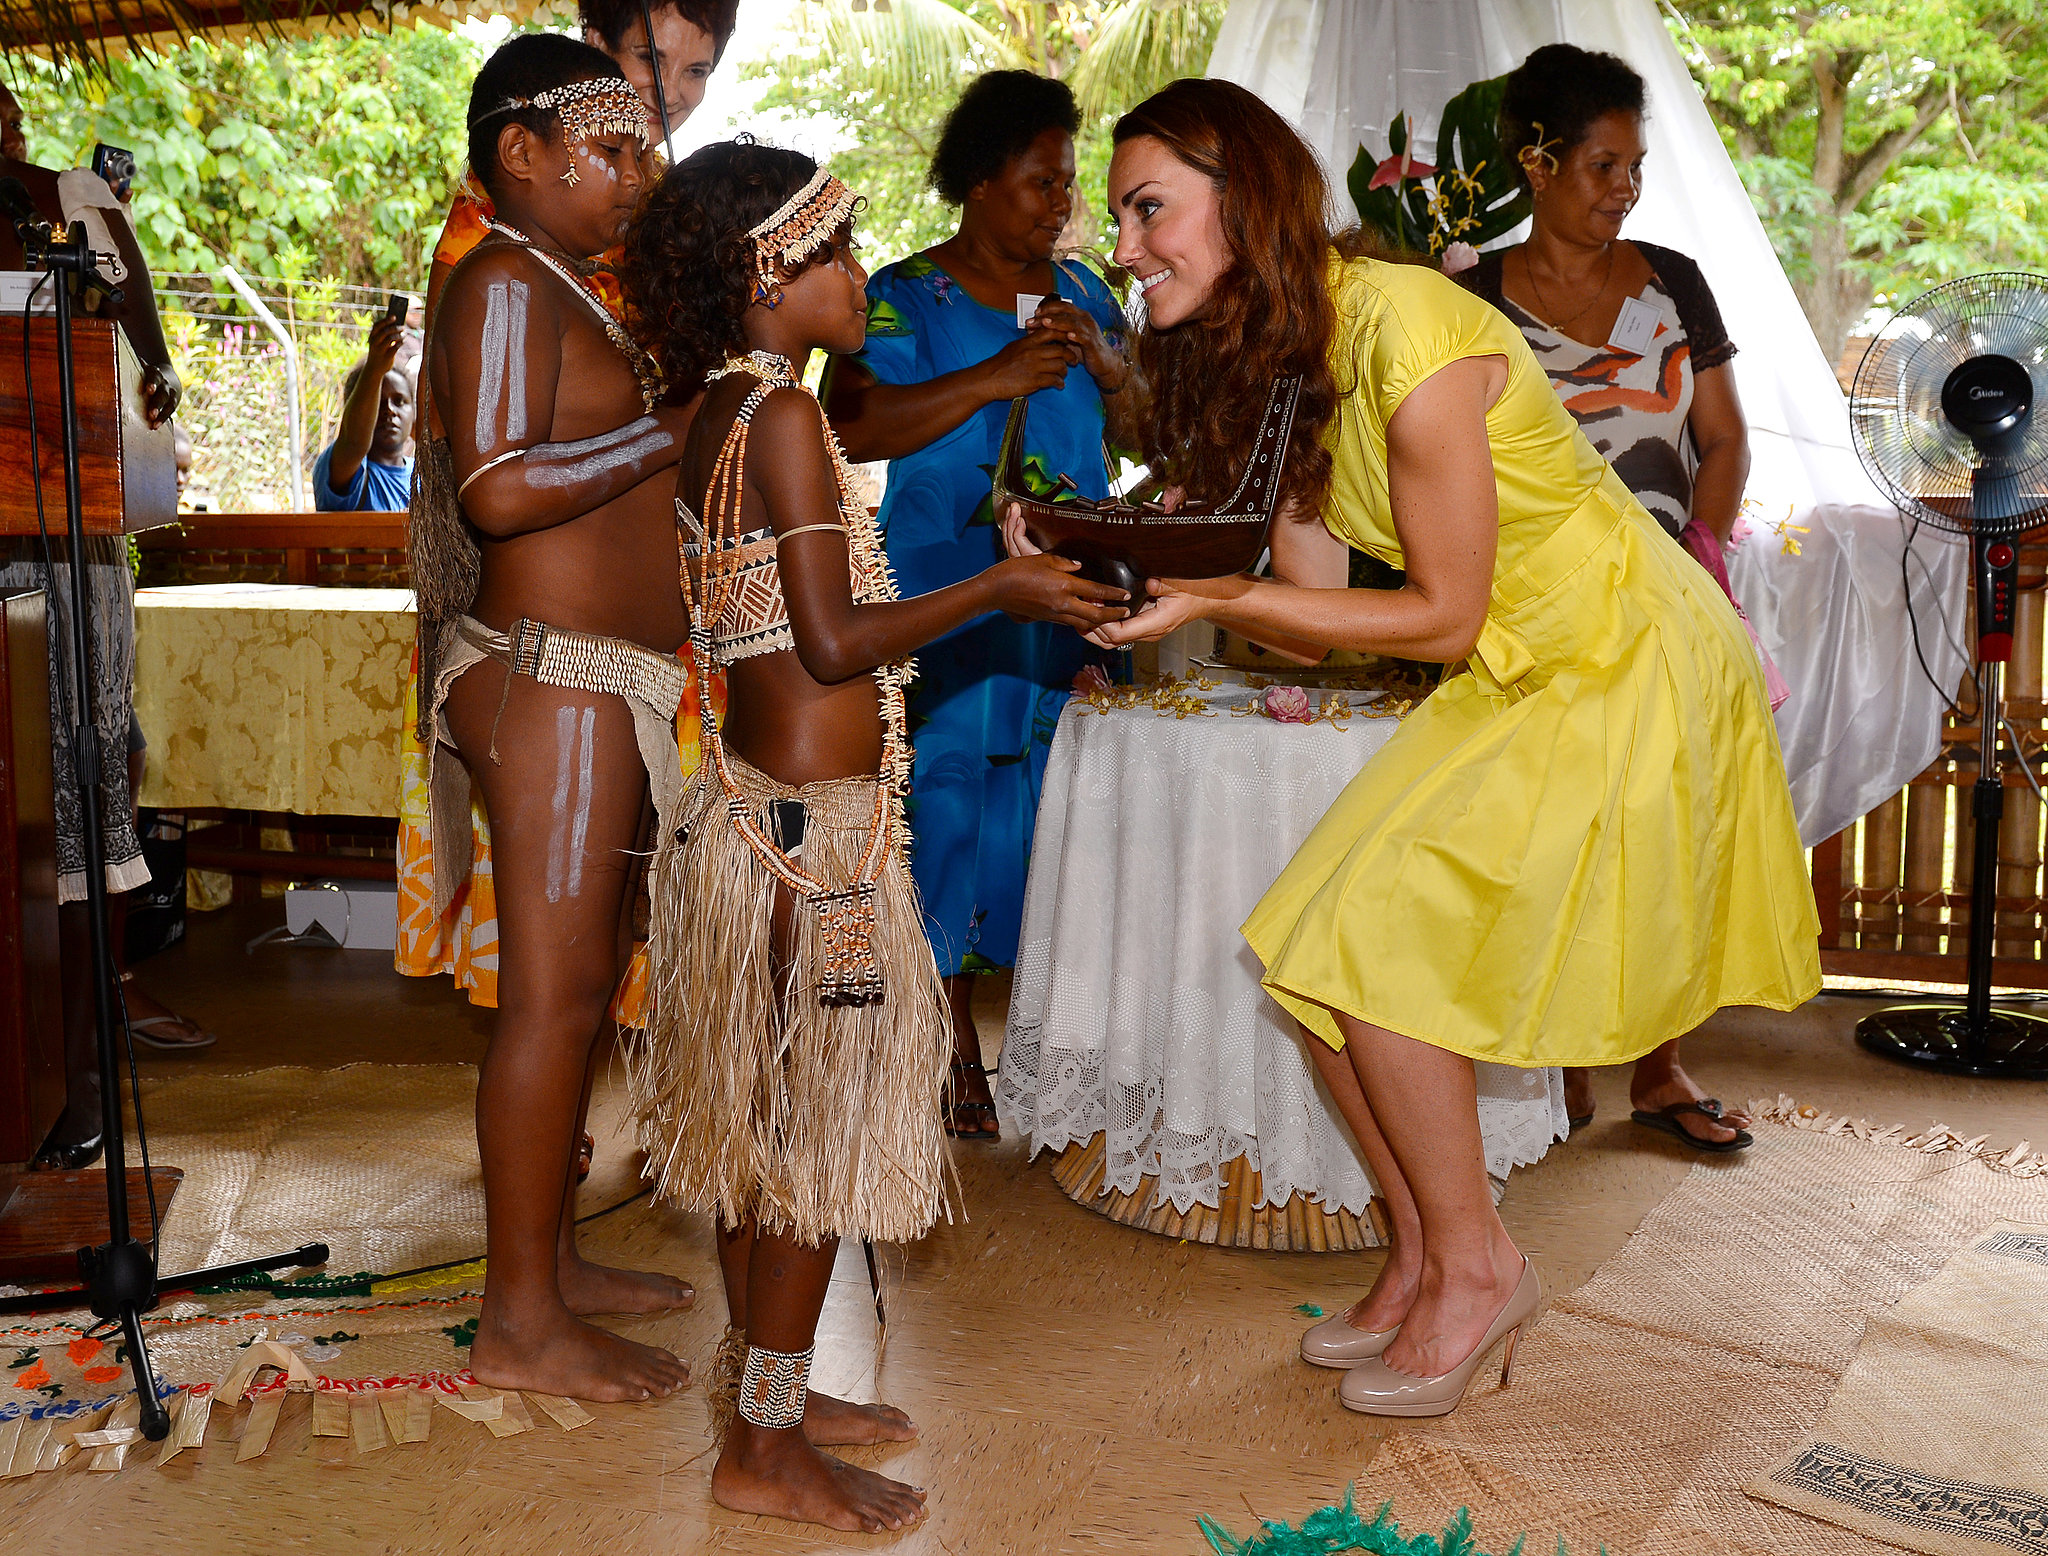 In September 2012, the duchess received a gift during her trip to the Solomon Islands.